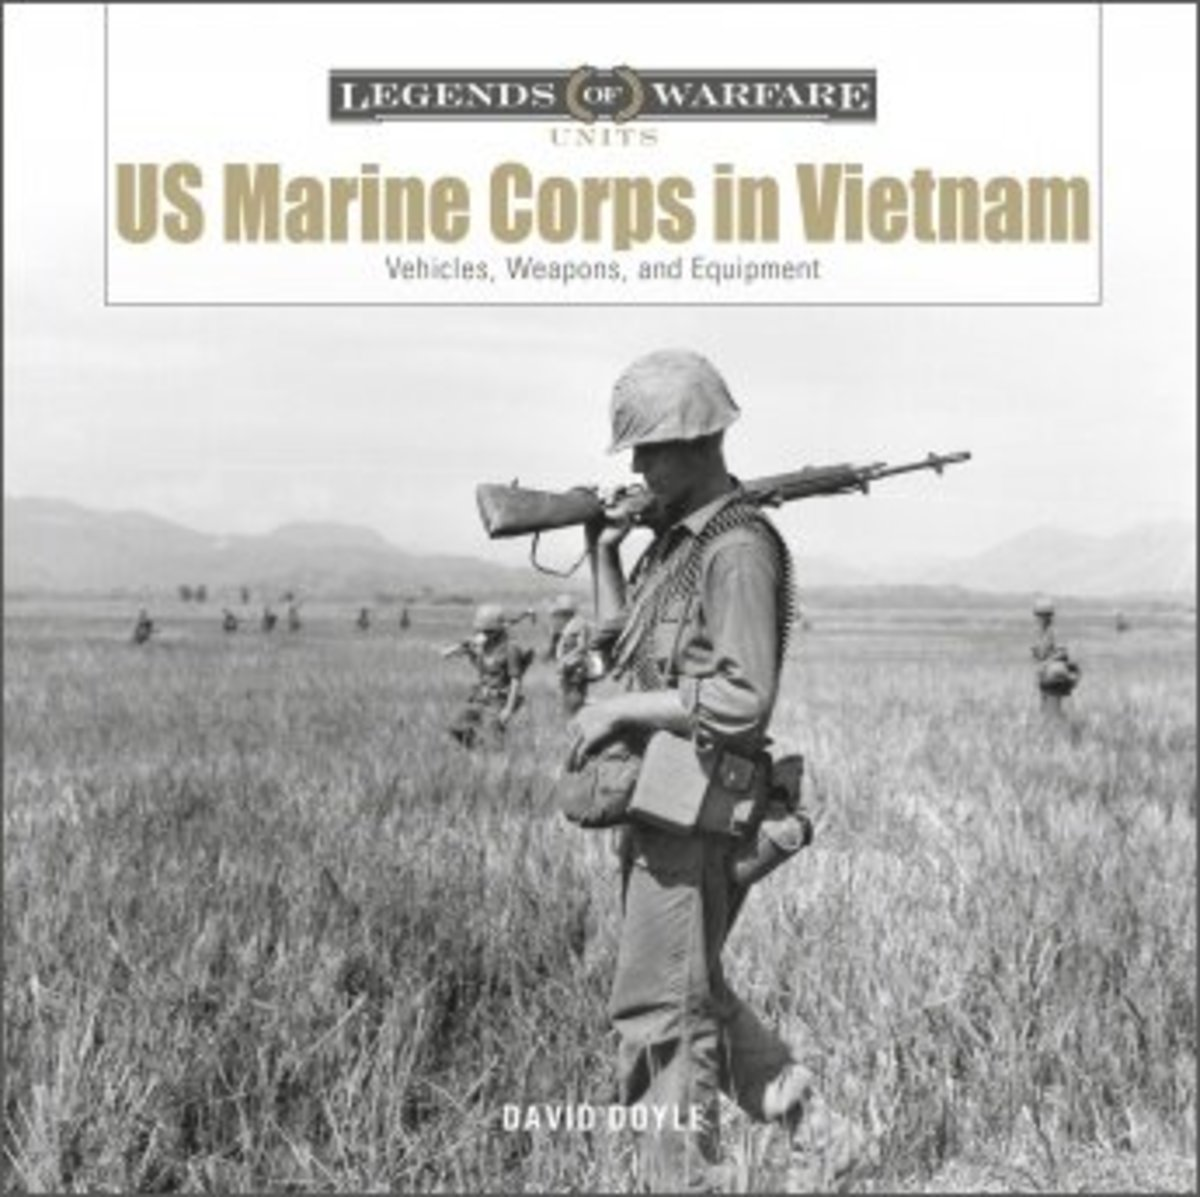 US Marine Corps in Vietnam: Vehicles, Weapons, and Equipment, by David Doyle,$19.99 + shipping